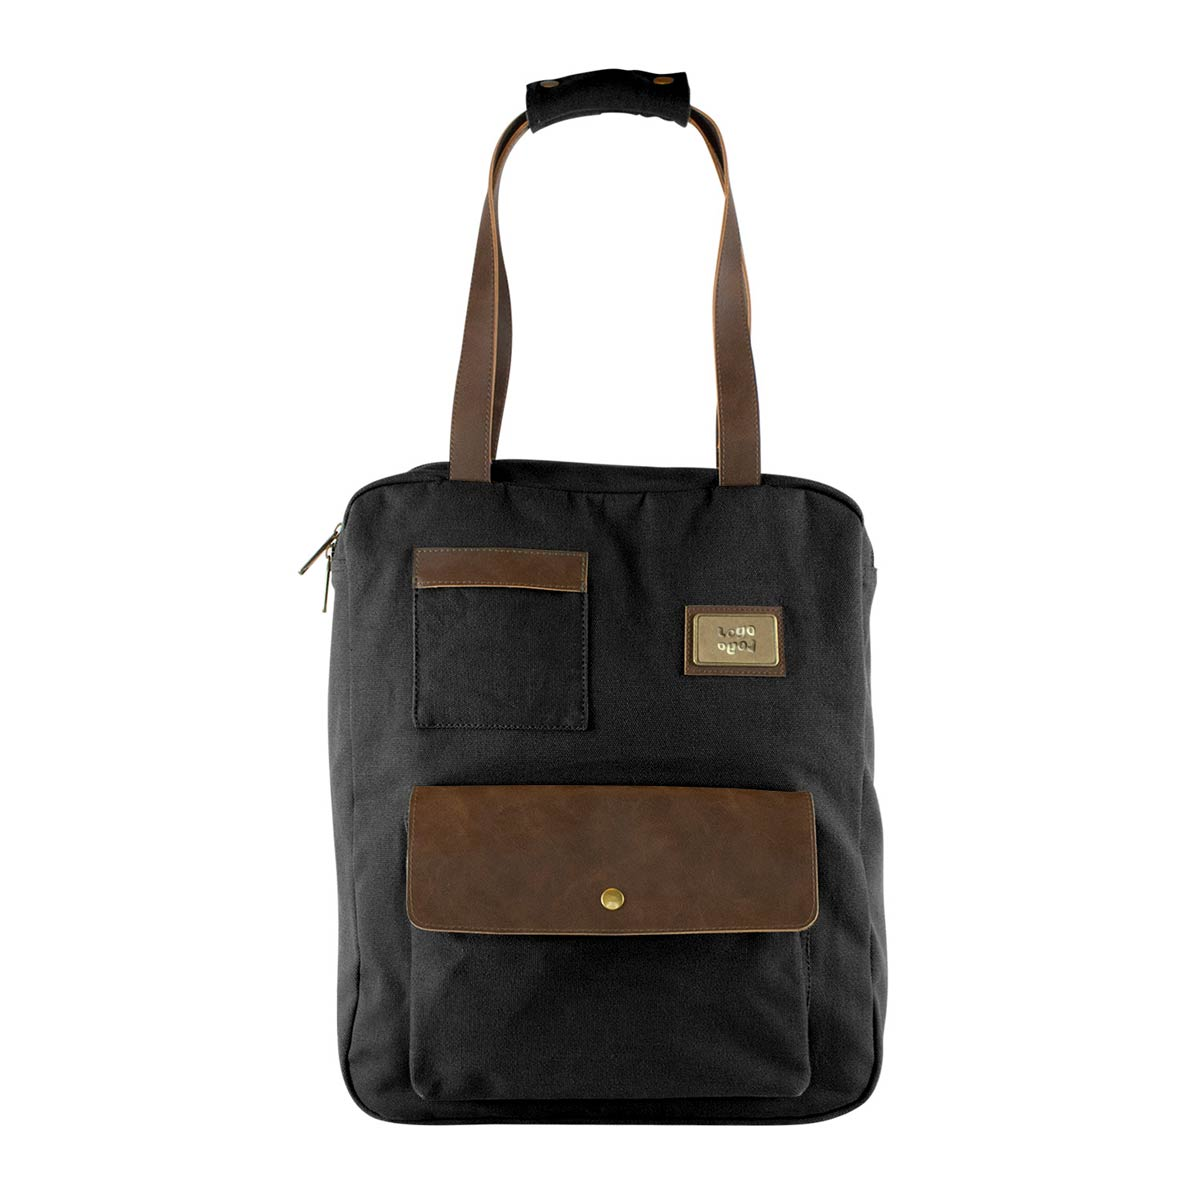 Brilliant tote black